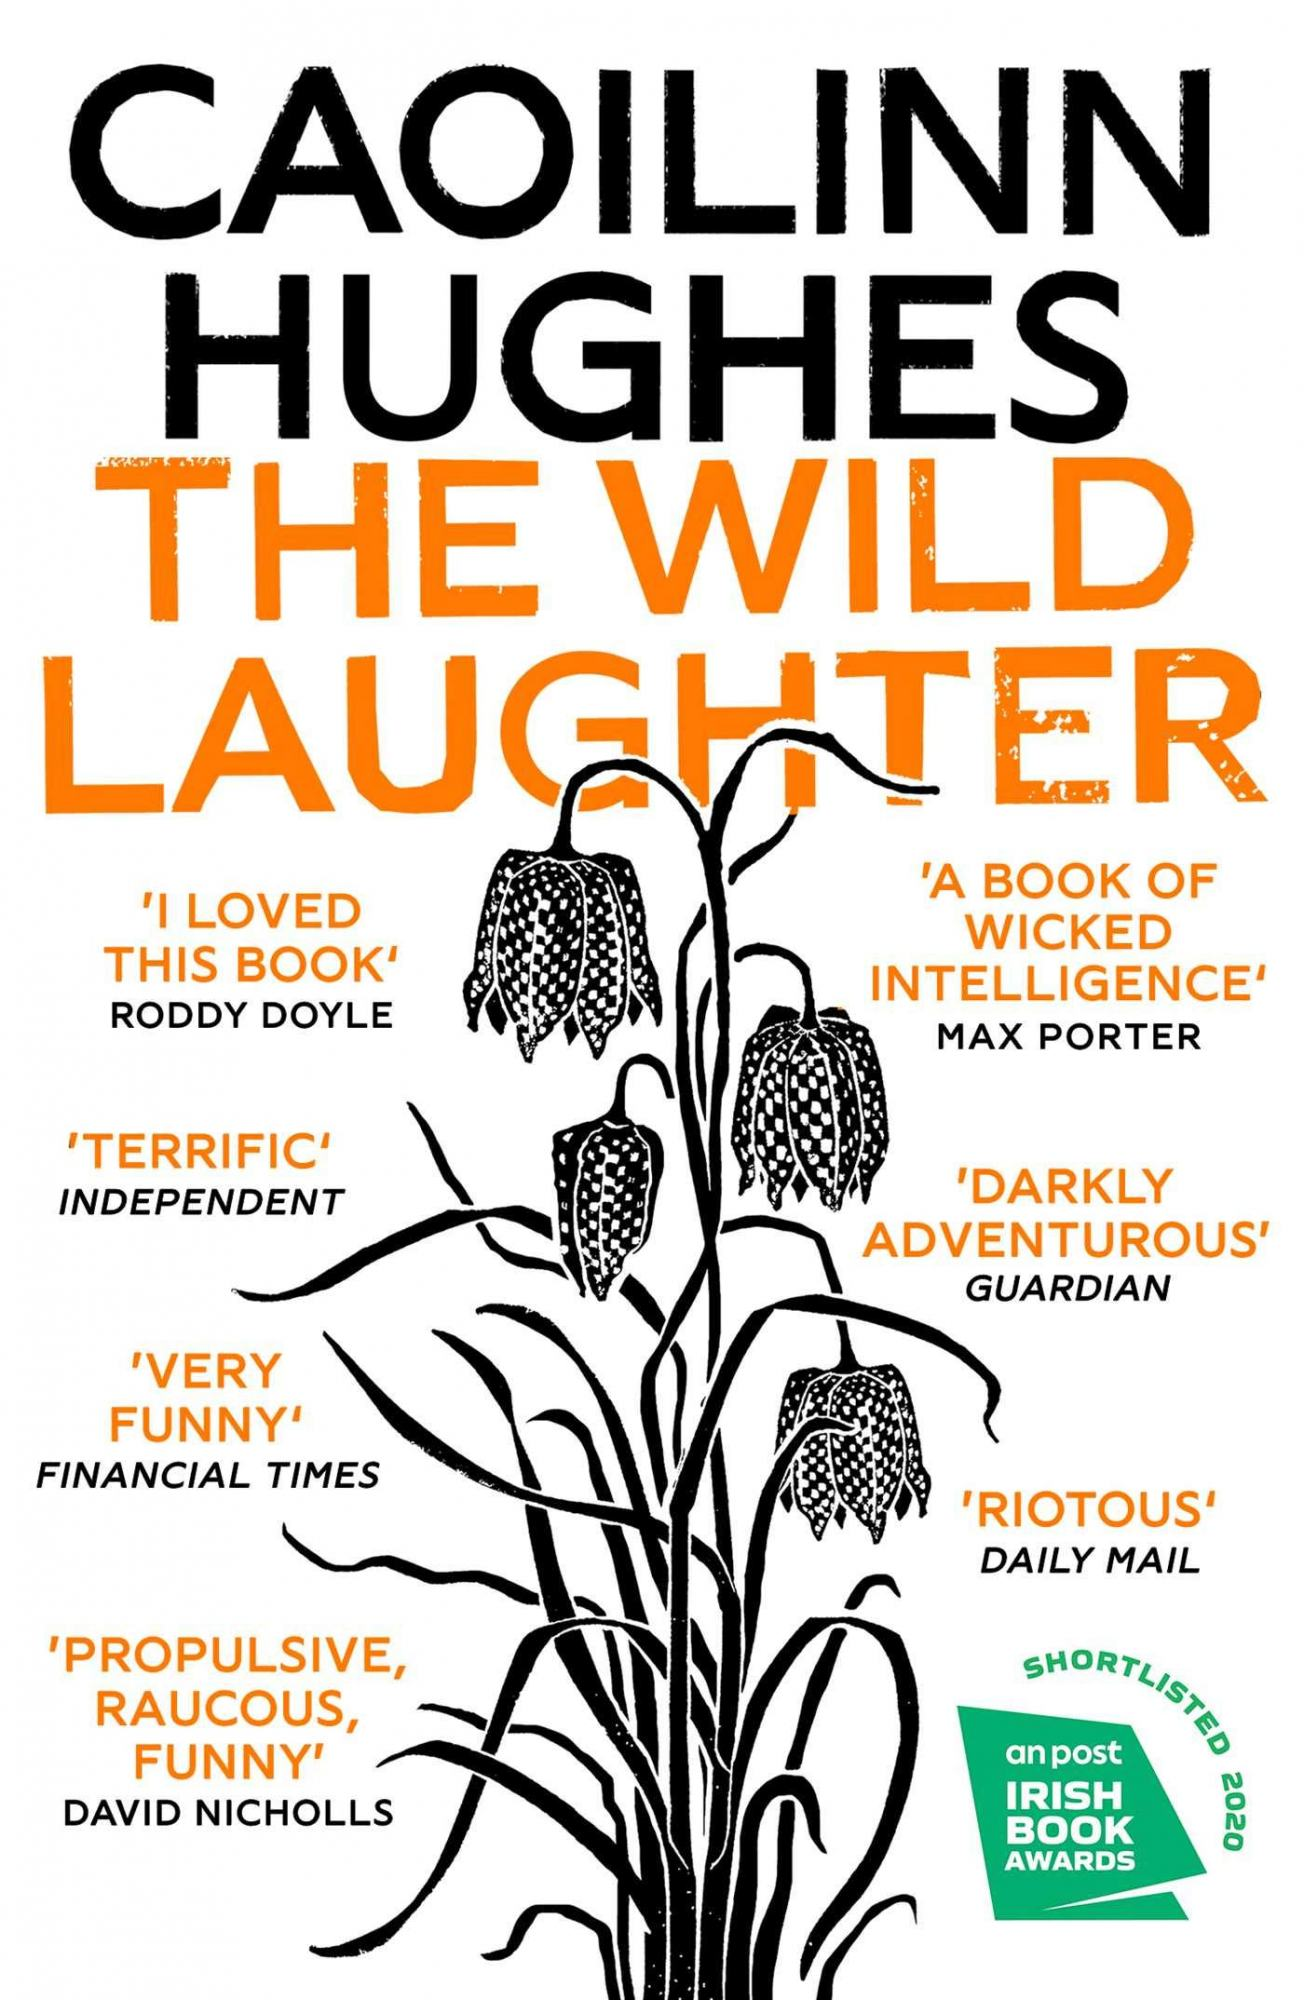 The Wild Laughter pb cover.jpg